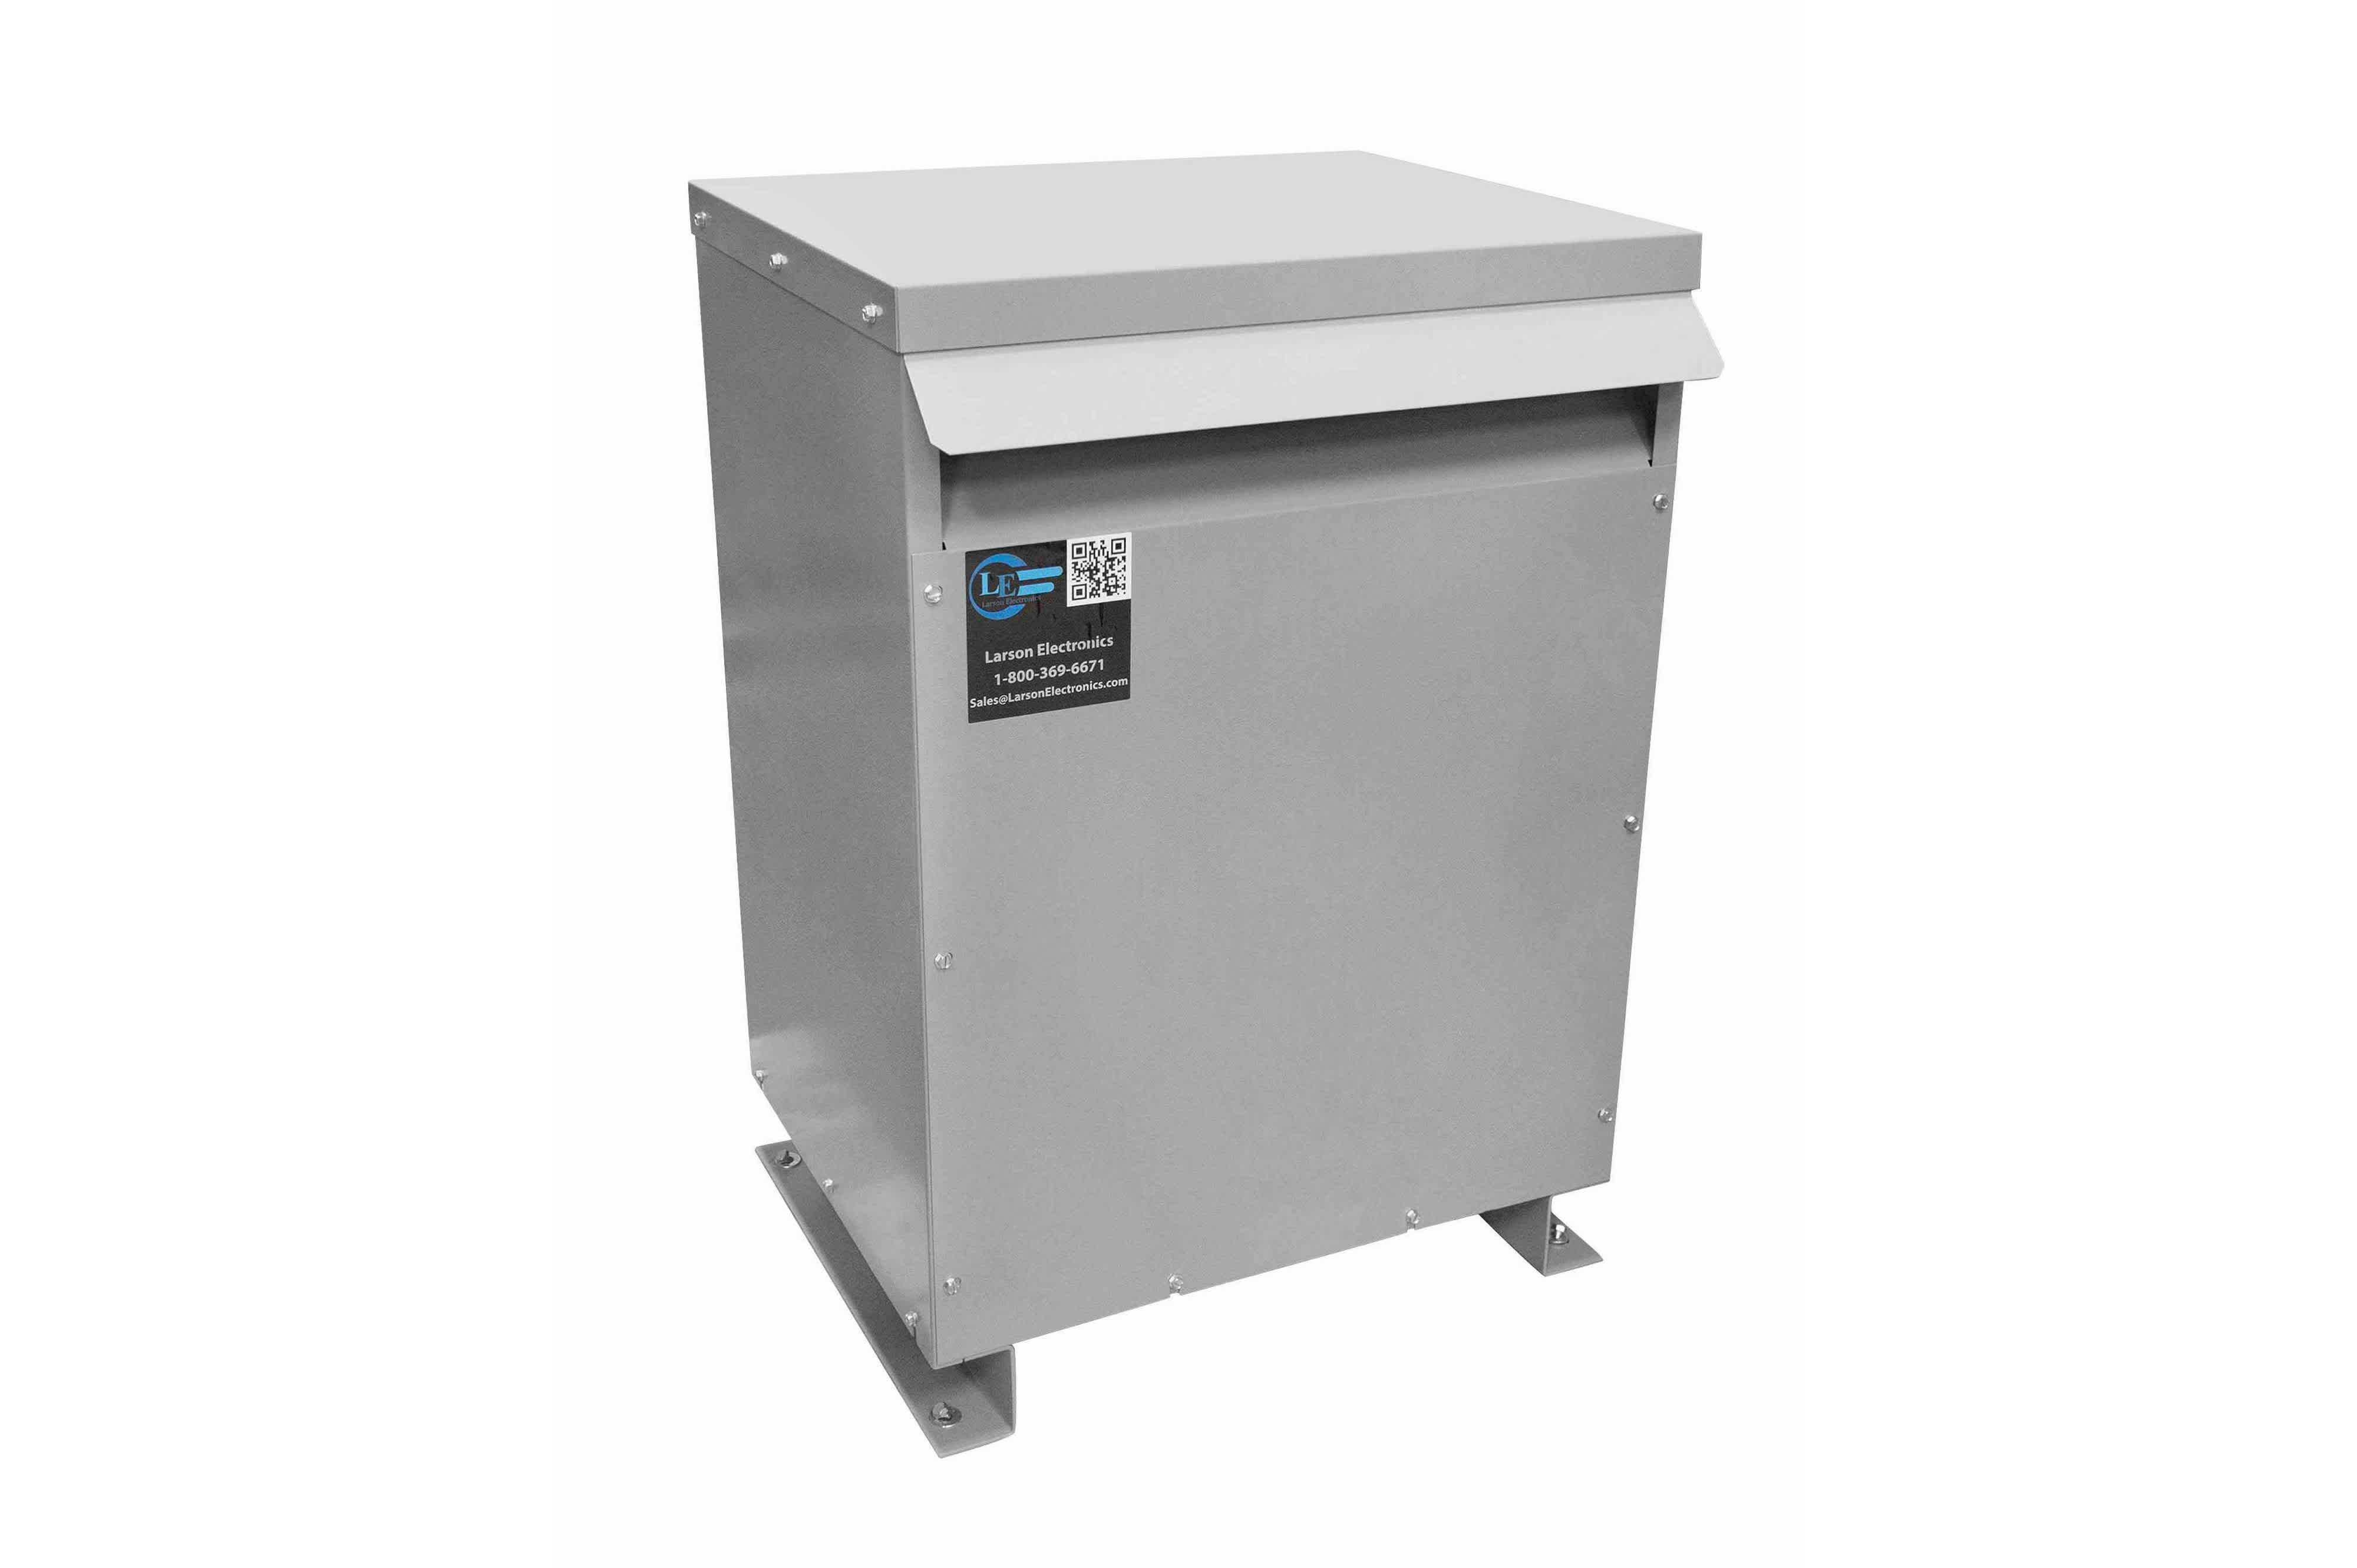 13 kVA 3PH Isolation Transformer, 575V Delta Primary, 415V Delta Secondary, N3R, Ventilated, 60 Hz